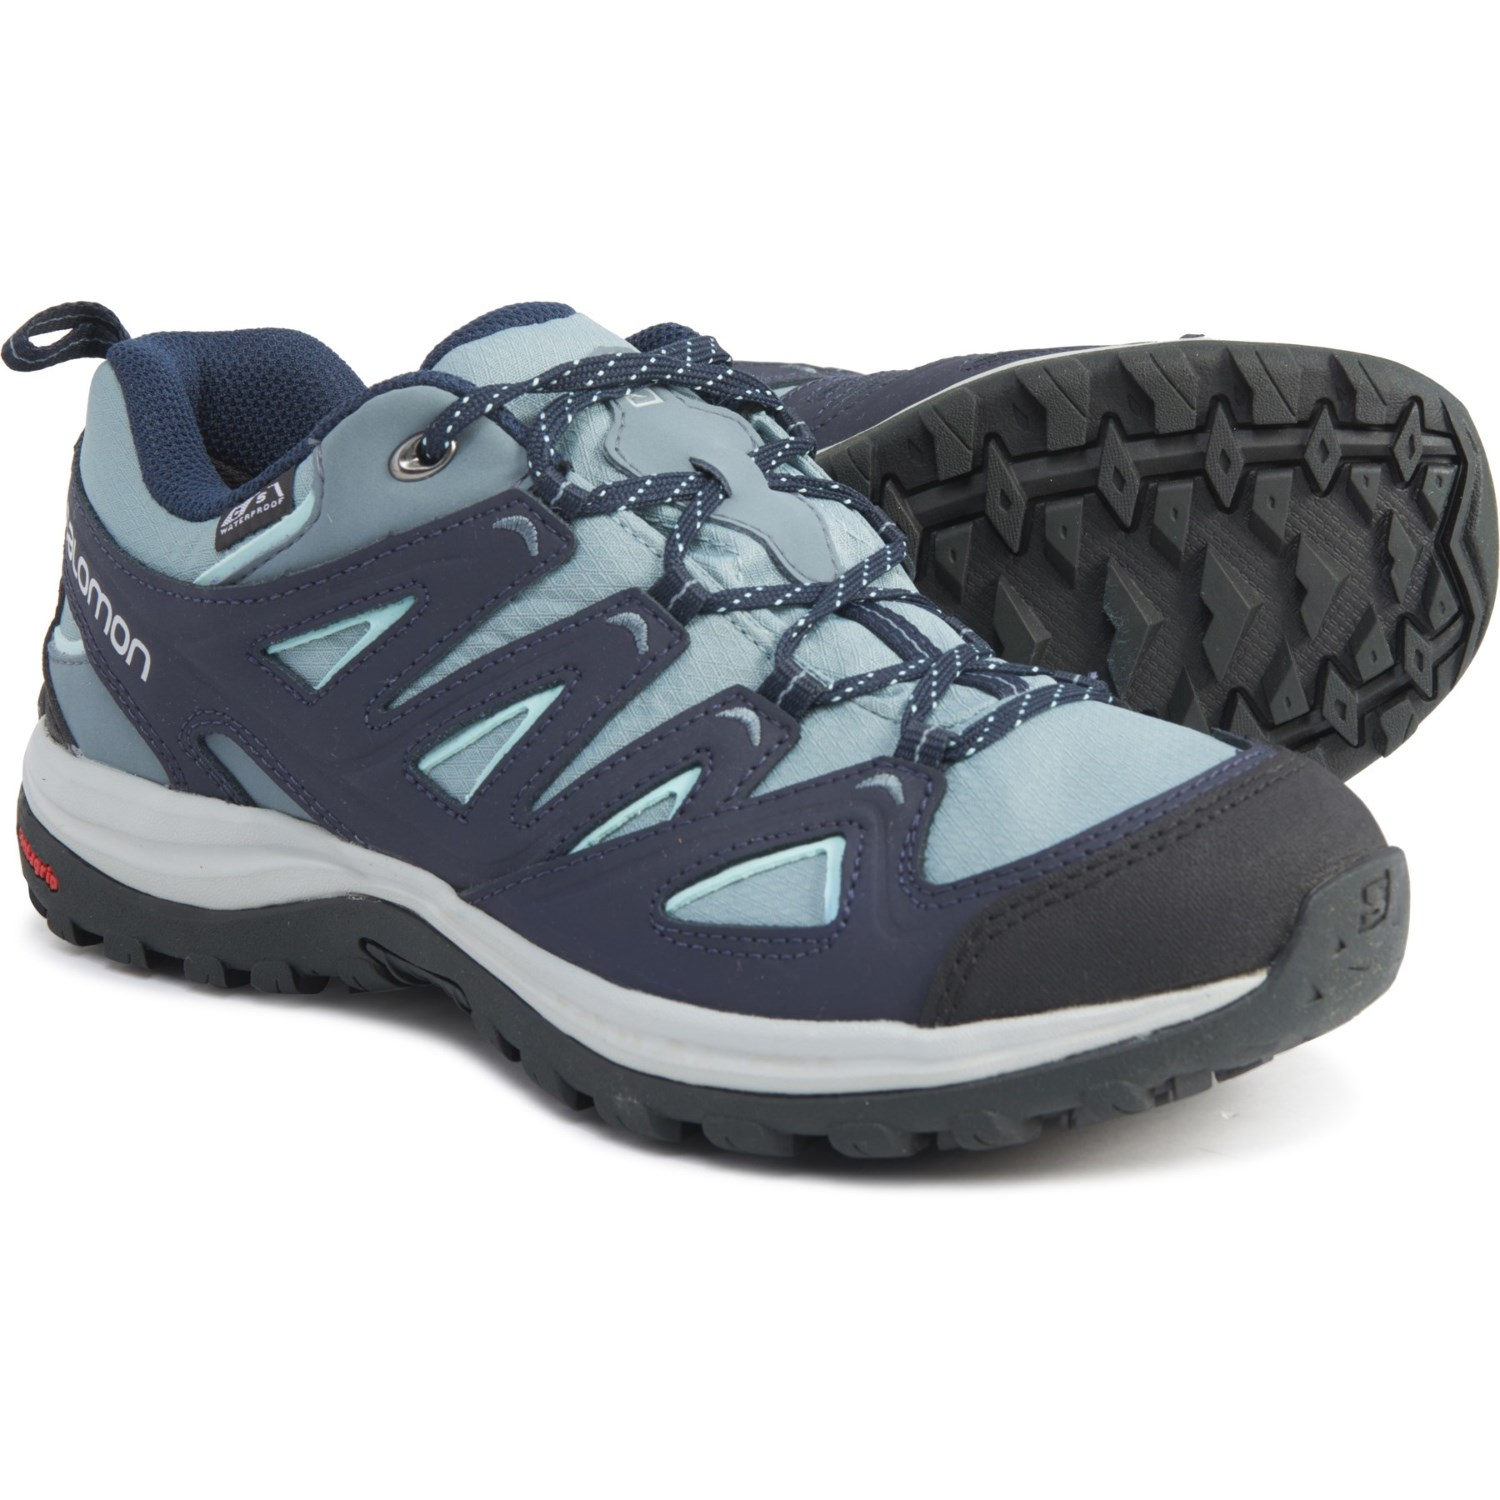 best mizuno shoes for walking everyday zara best price